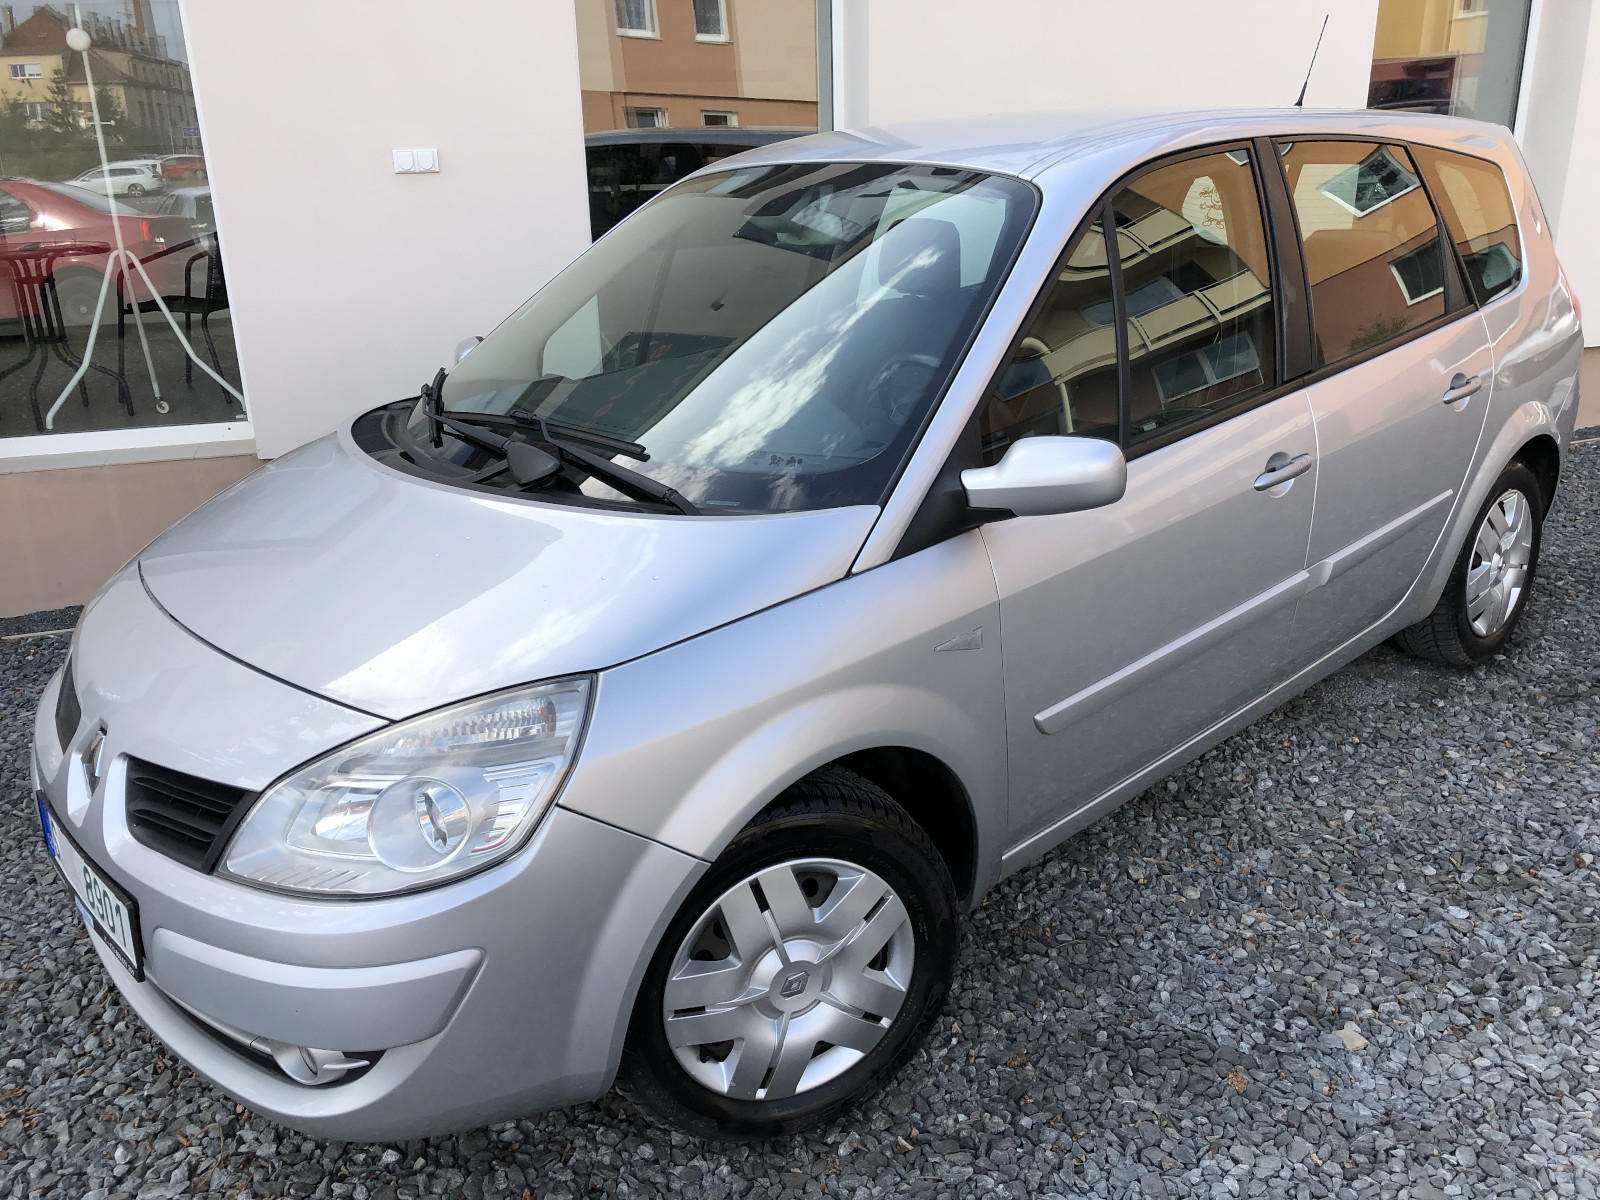 Renault Grand Scenic 1.9dCi 96kW